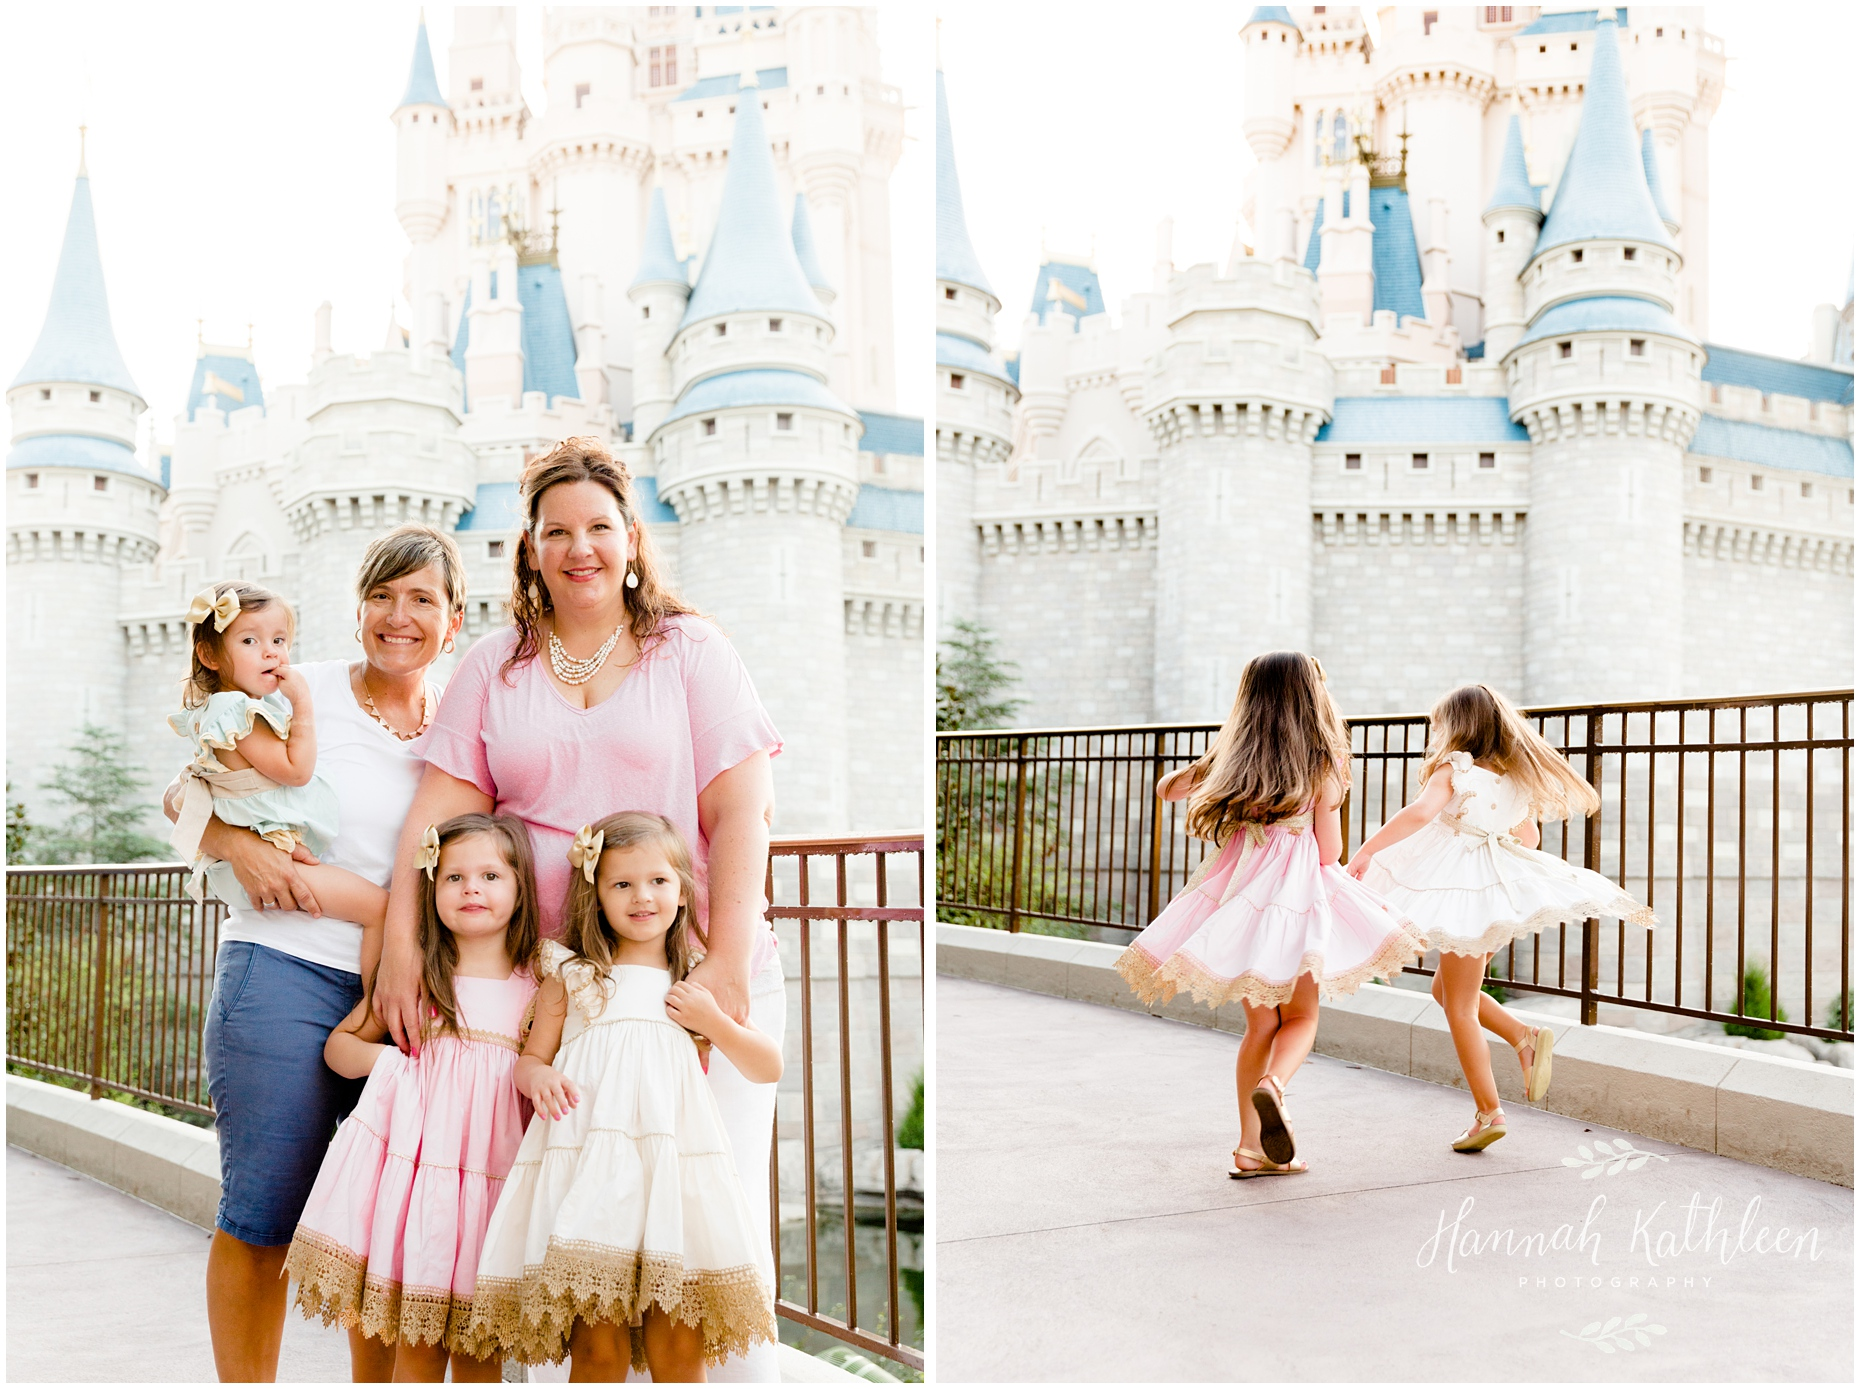 Kathleen_Sandy_Family_Photo_Shoot_Disney_World_Mickey_Bar